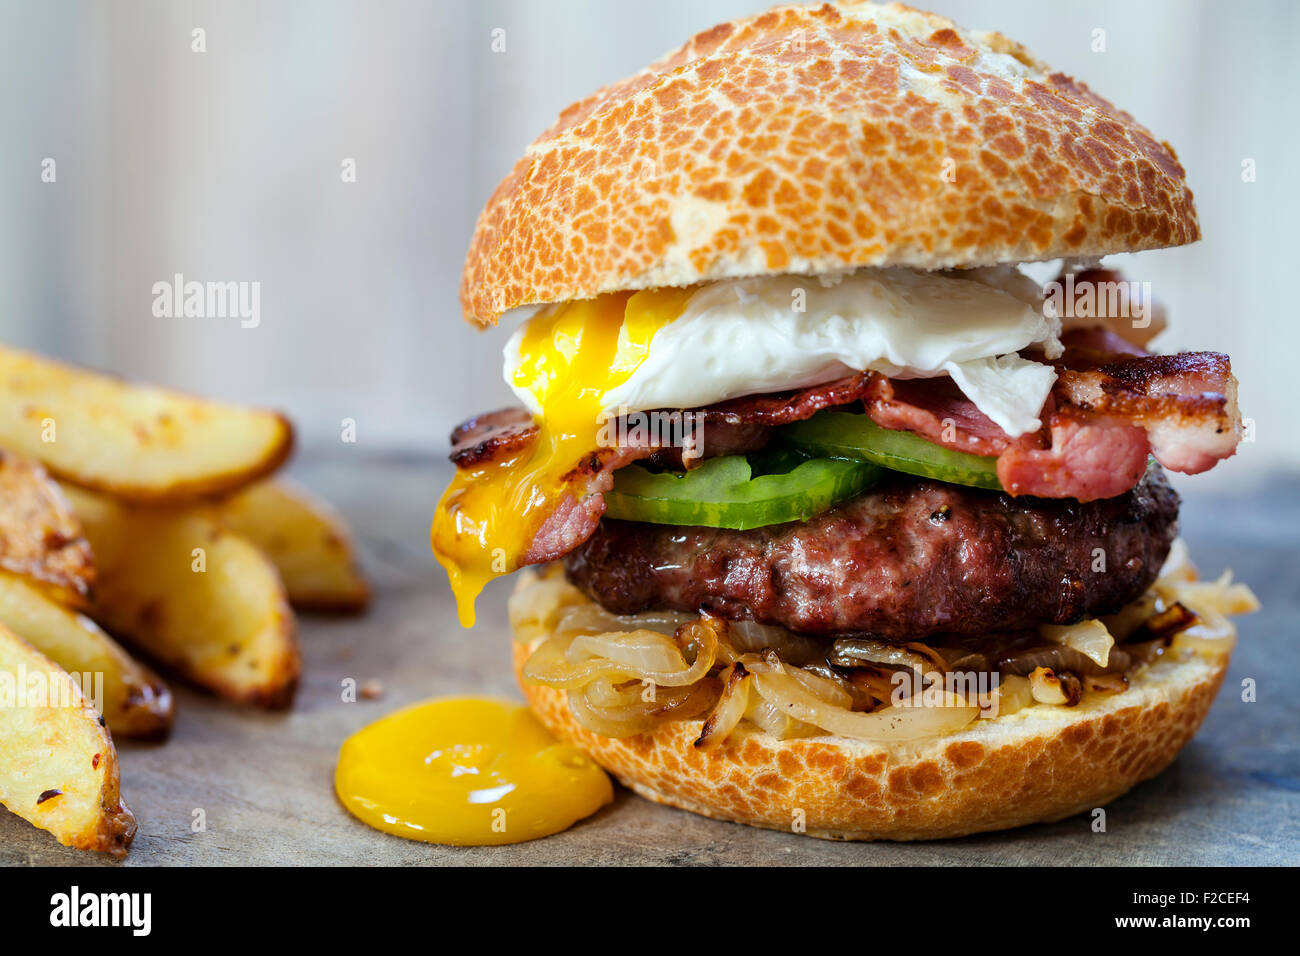 Burger de boeuf au bacon et œuf poché Photo Stock